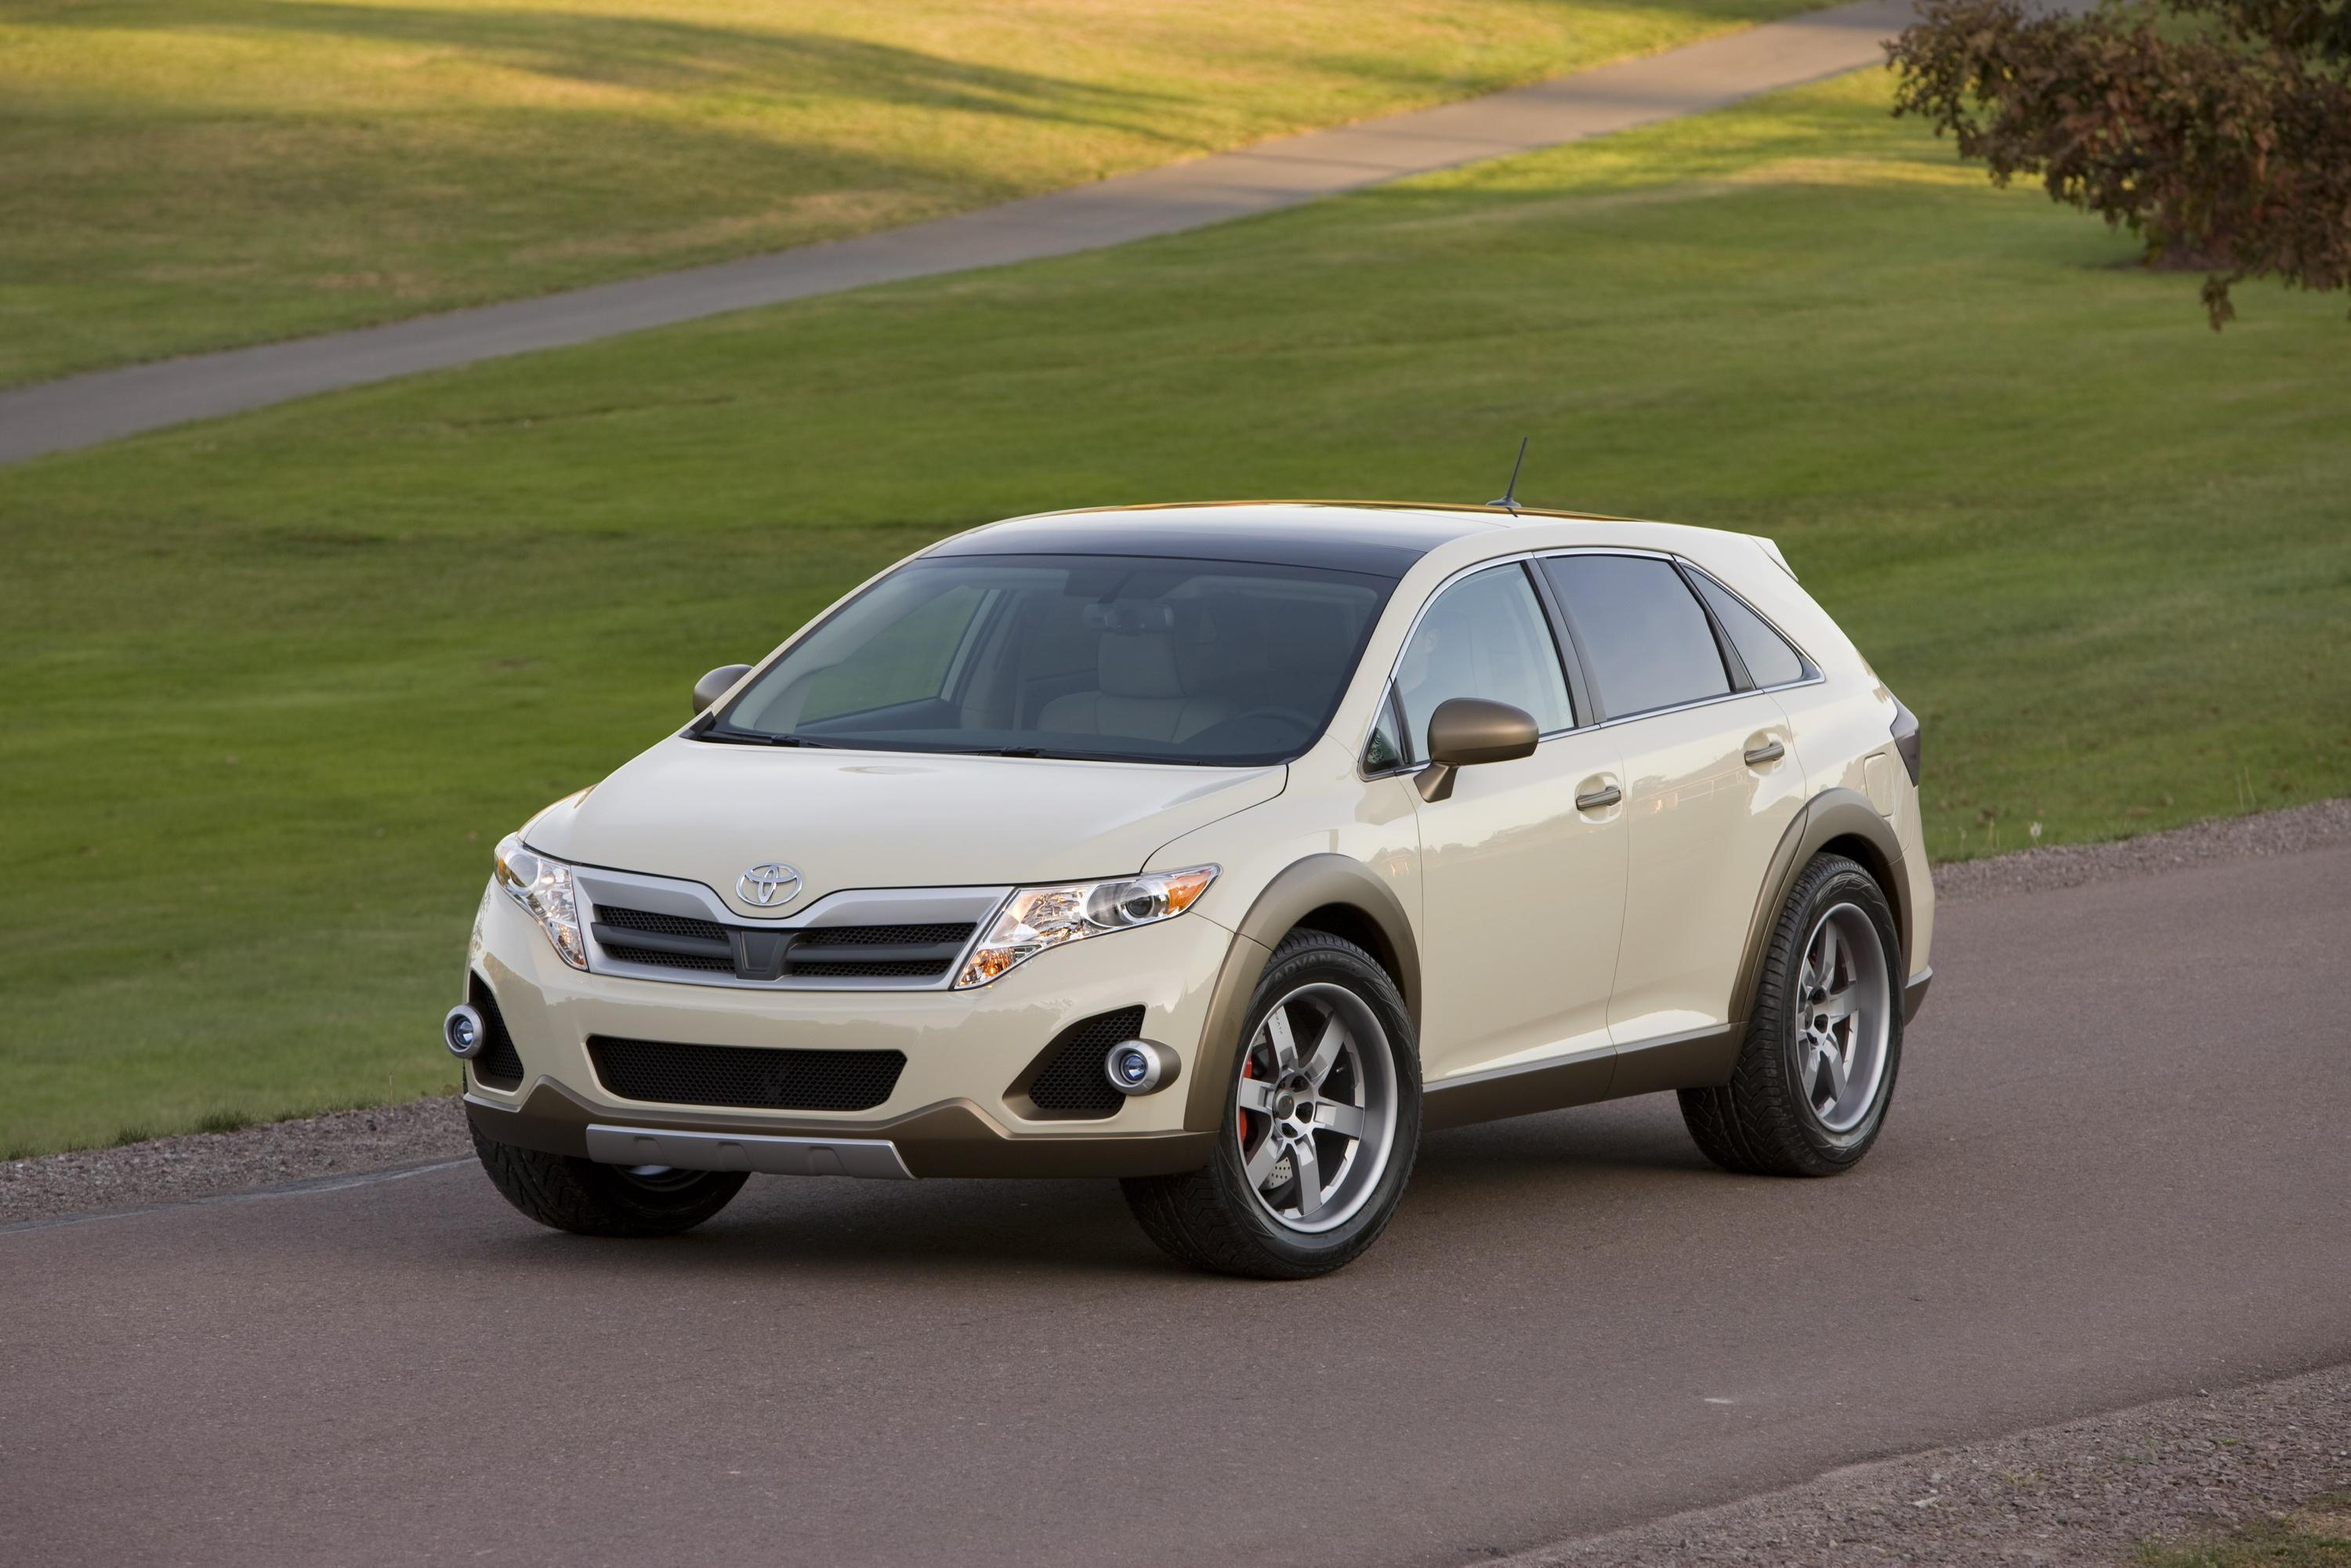 venza limited created l rapha review toyota driving awd with suv reviews road test